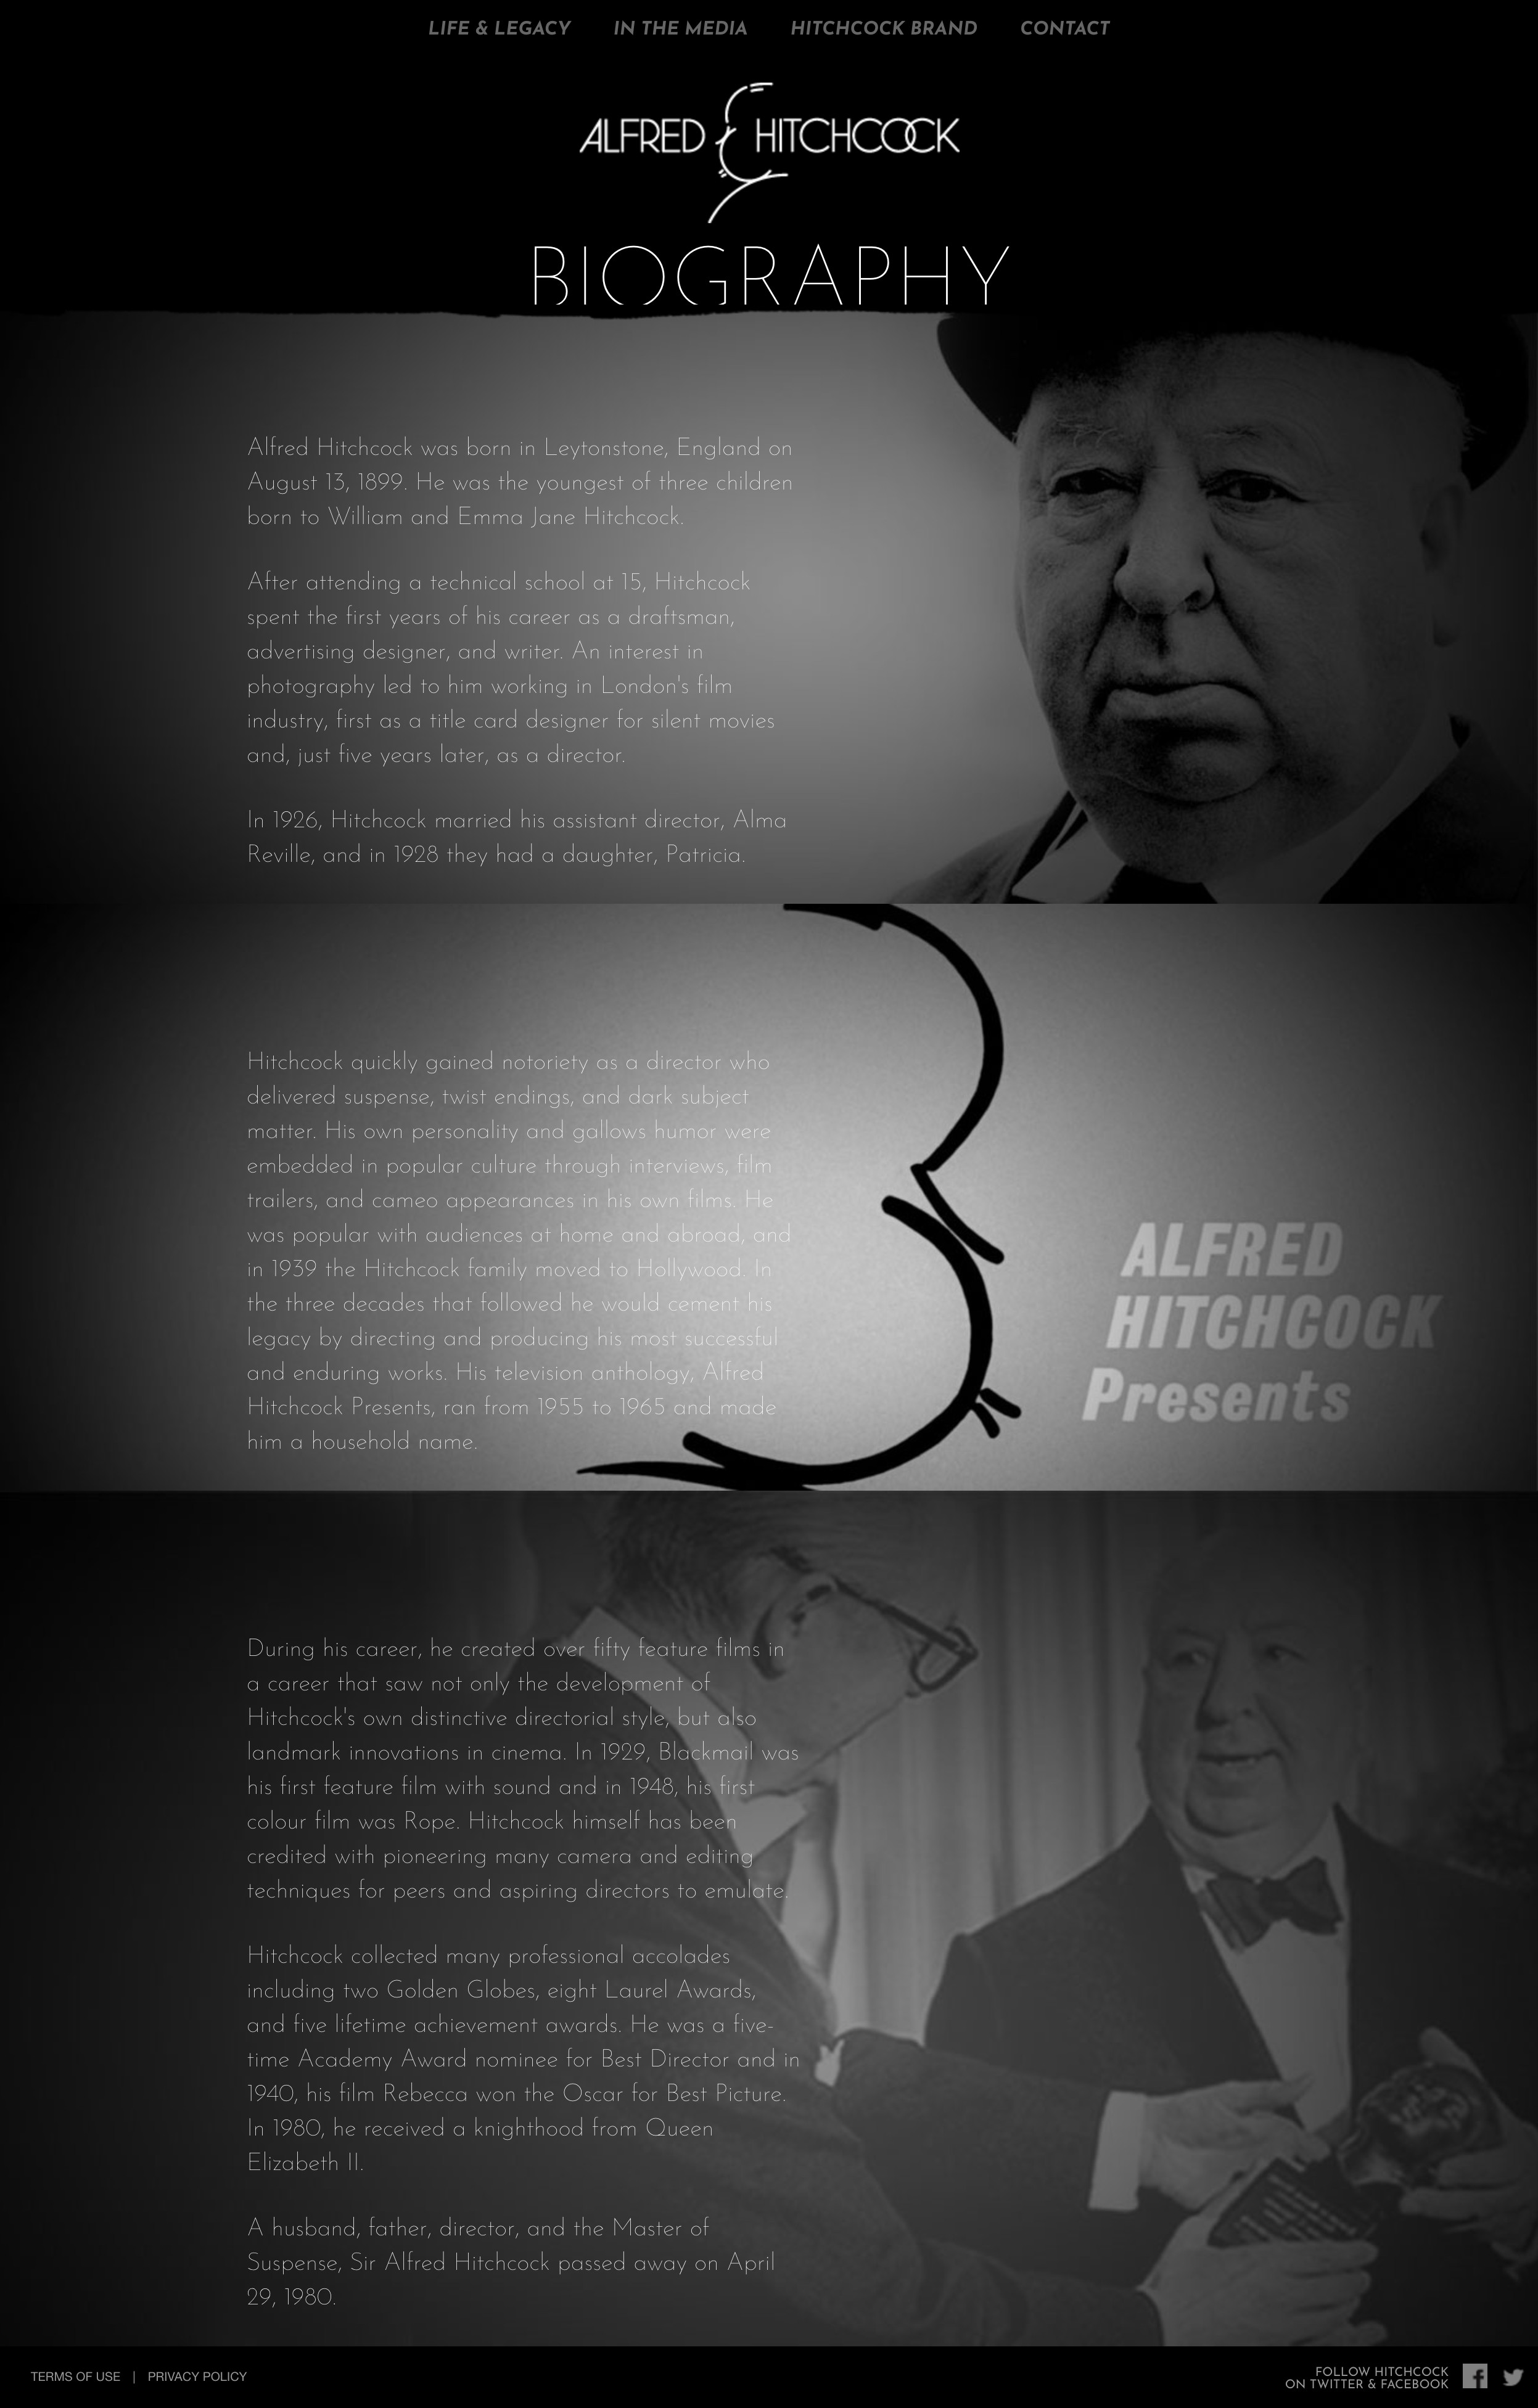 screencapture-alfredhitchcock-life-and-legacy-biography-2018-12-13-20_57_19.png